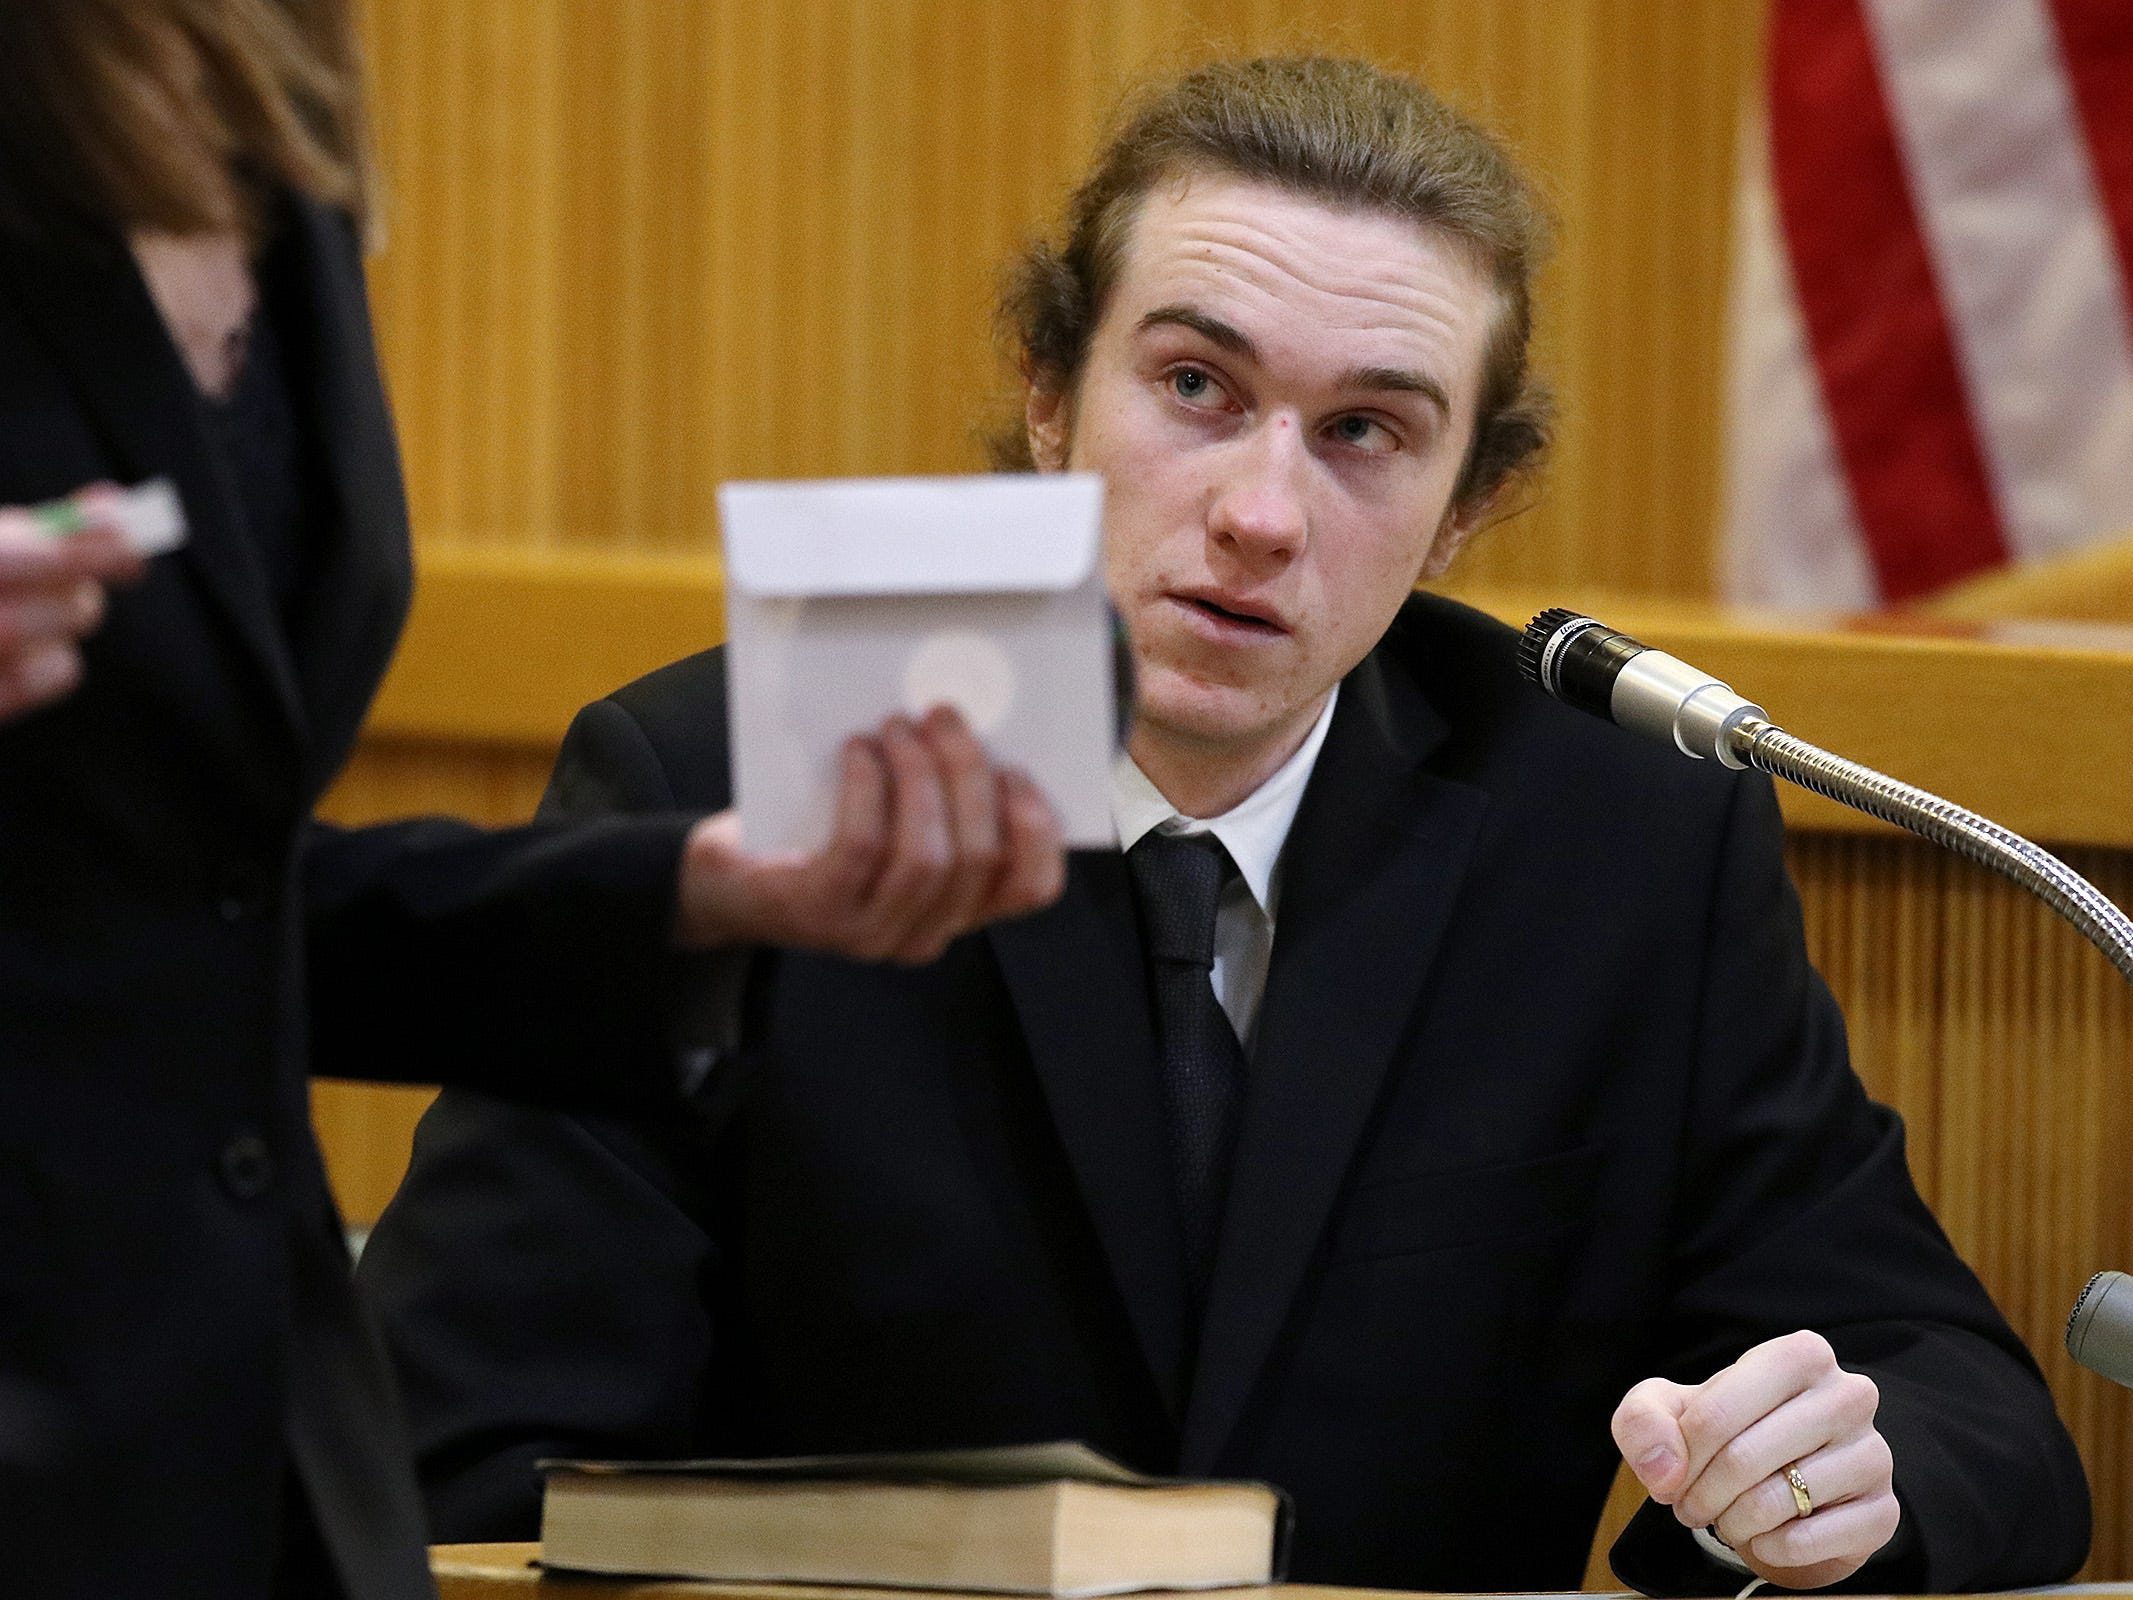 Anthony Curry, who worked with police and recorded a confession by his friend, Liam McAtasney, testifies during the trial of Liam McAtasney, who is charged with the murder of former high school classmate, Sarah Stern, before Superior Court Judge Richard W. English at the Monmouth County Courthouse in Freehold, NJ Thursday, February 7, 2019.